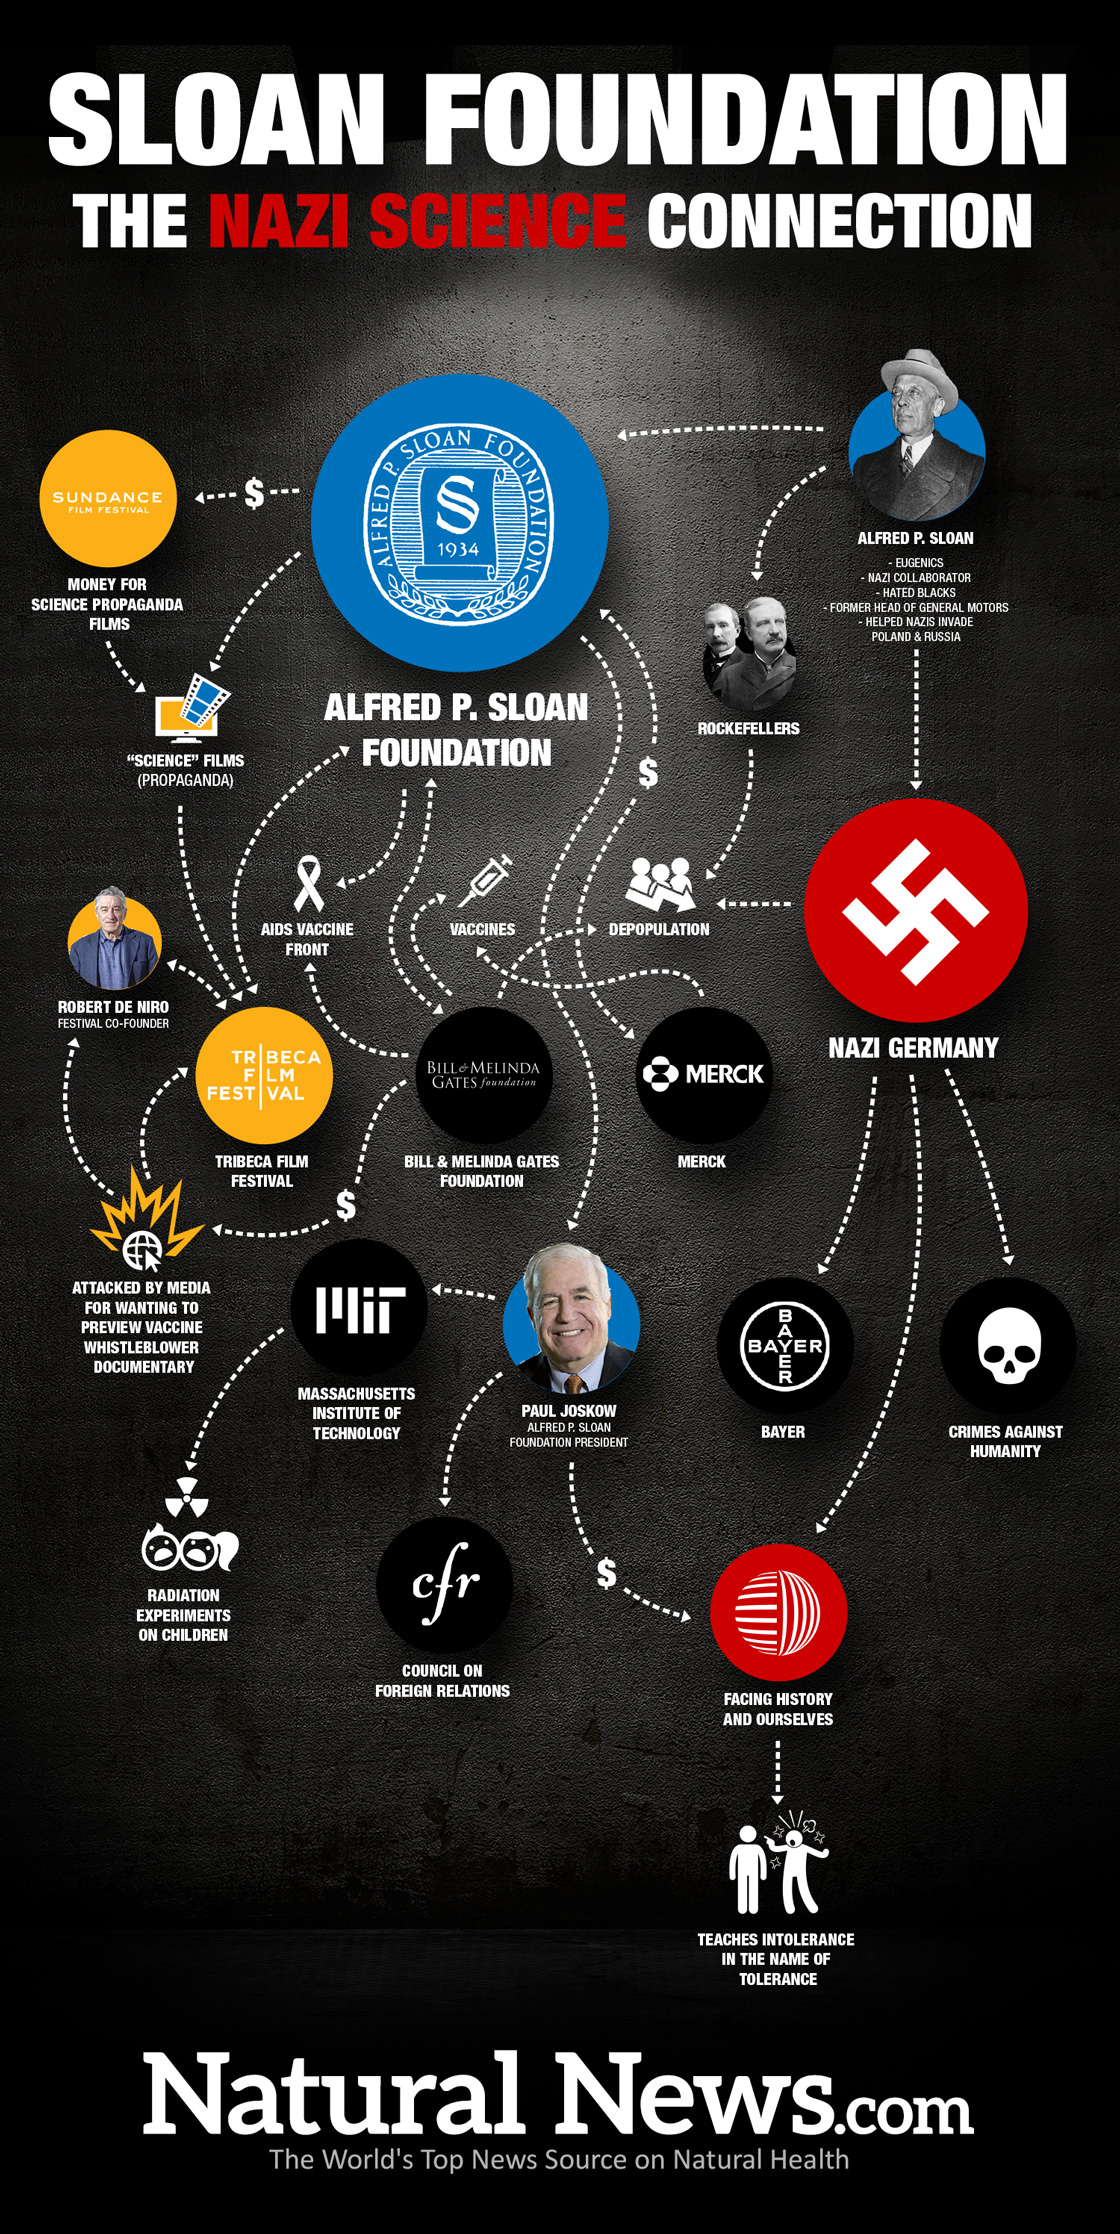 Sloan Foundation - The Nazi Science Connection